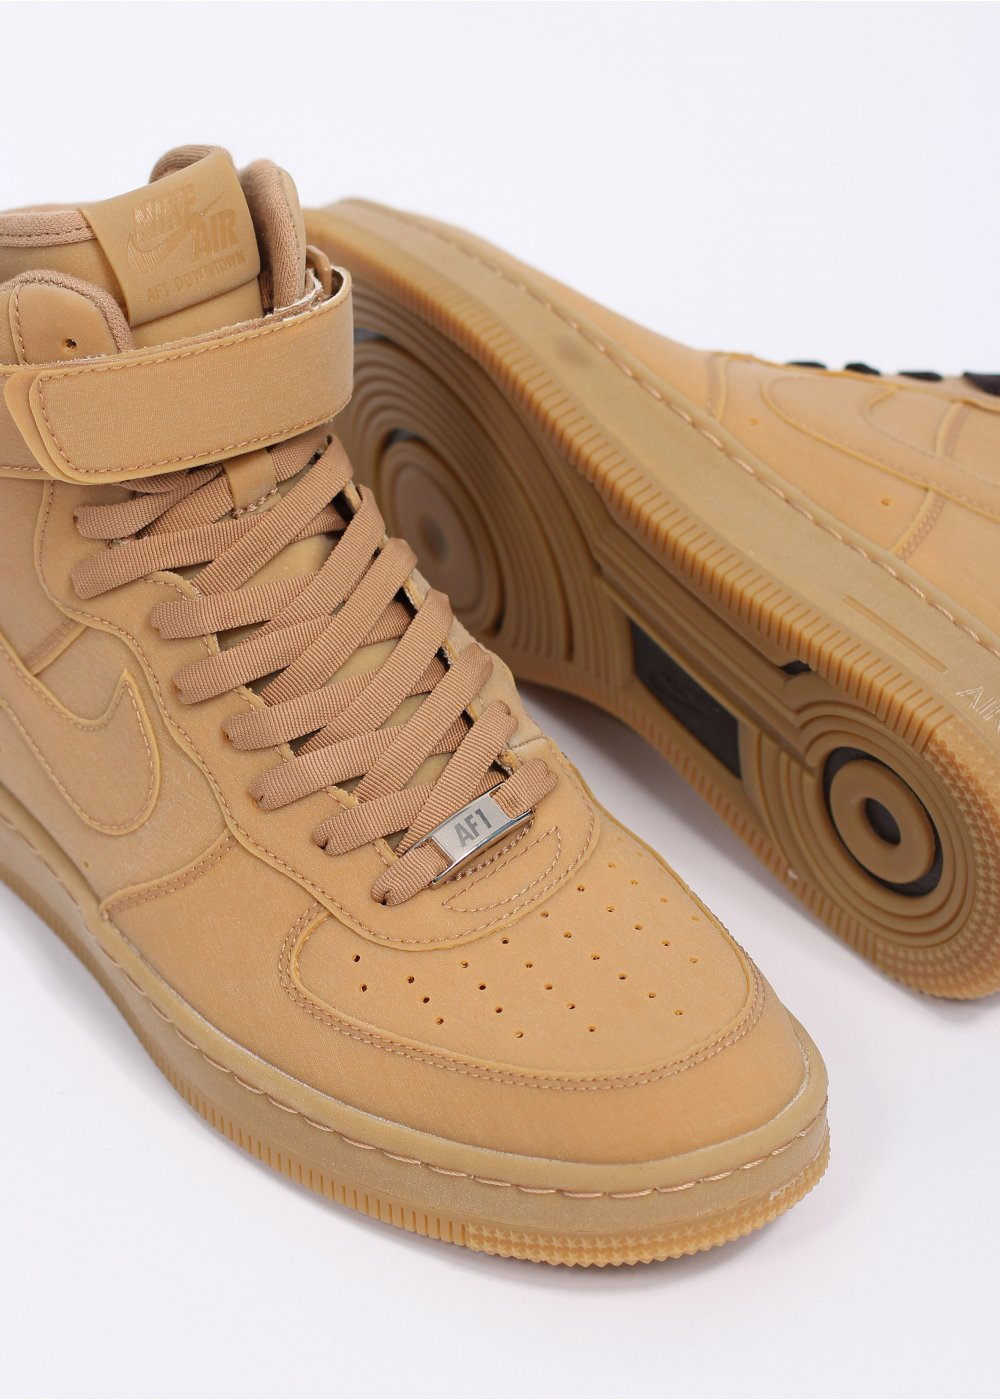 100% authentic efb96 6f4ff nike air force 1 downtown mid